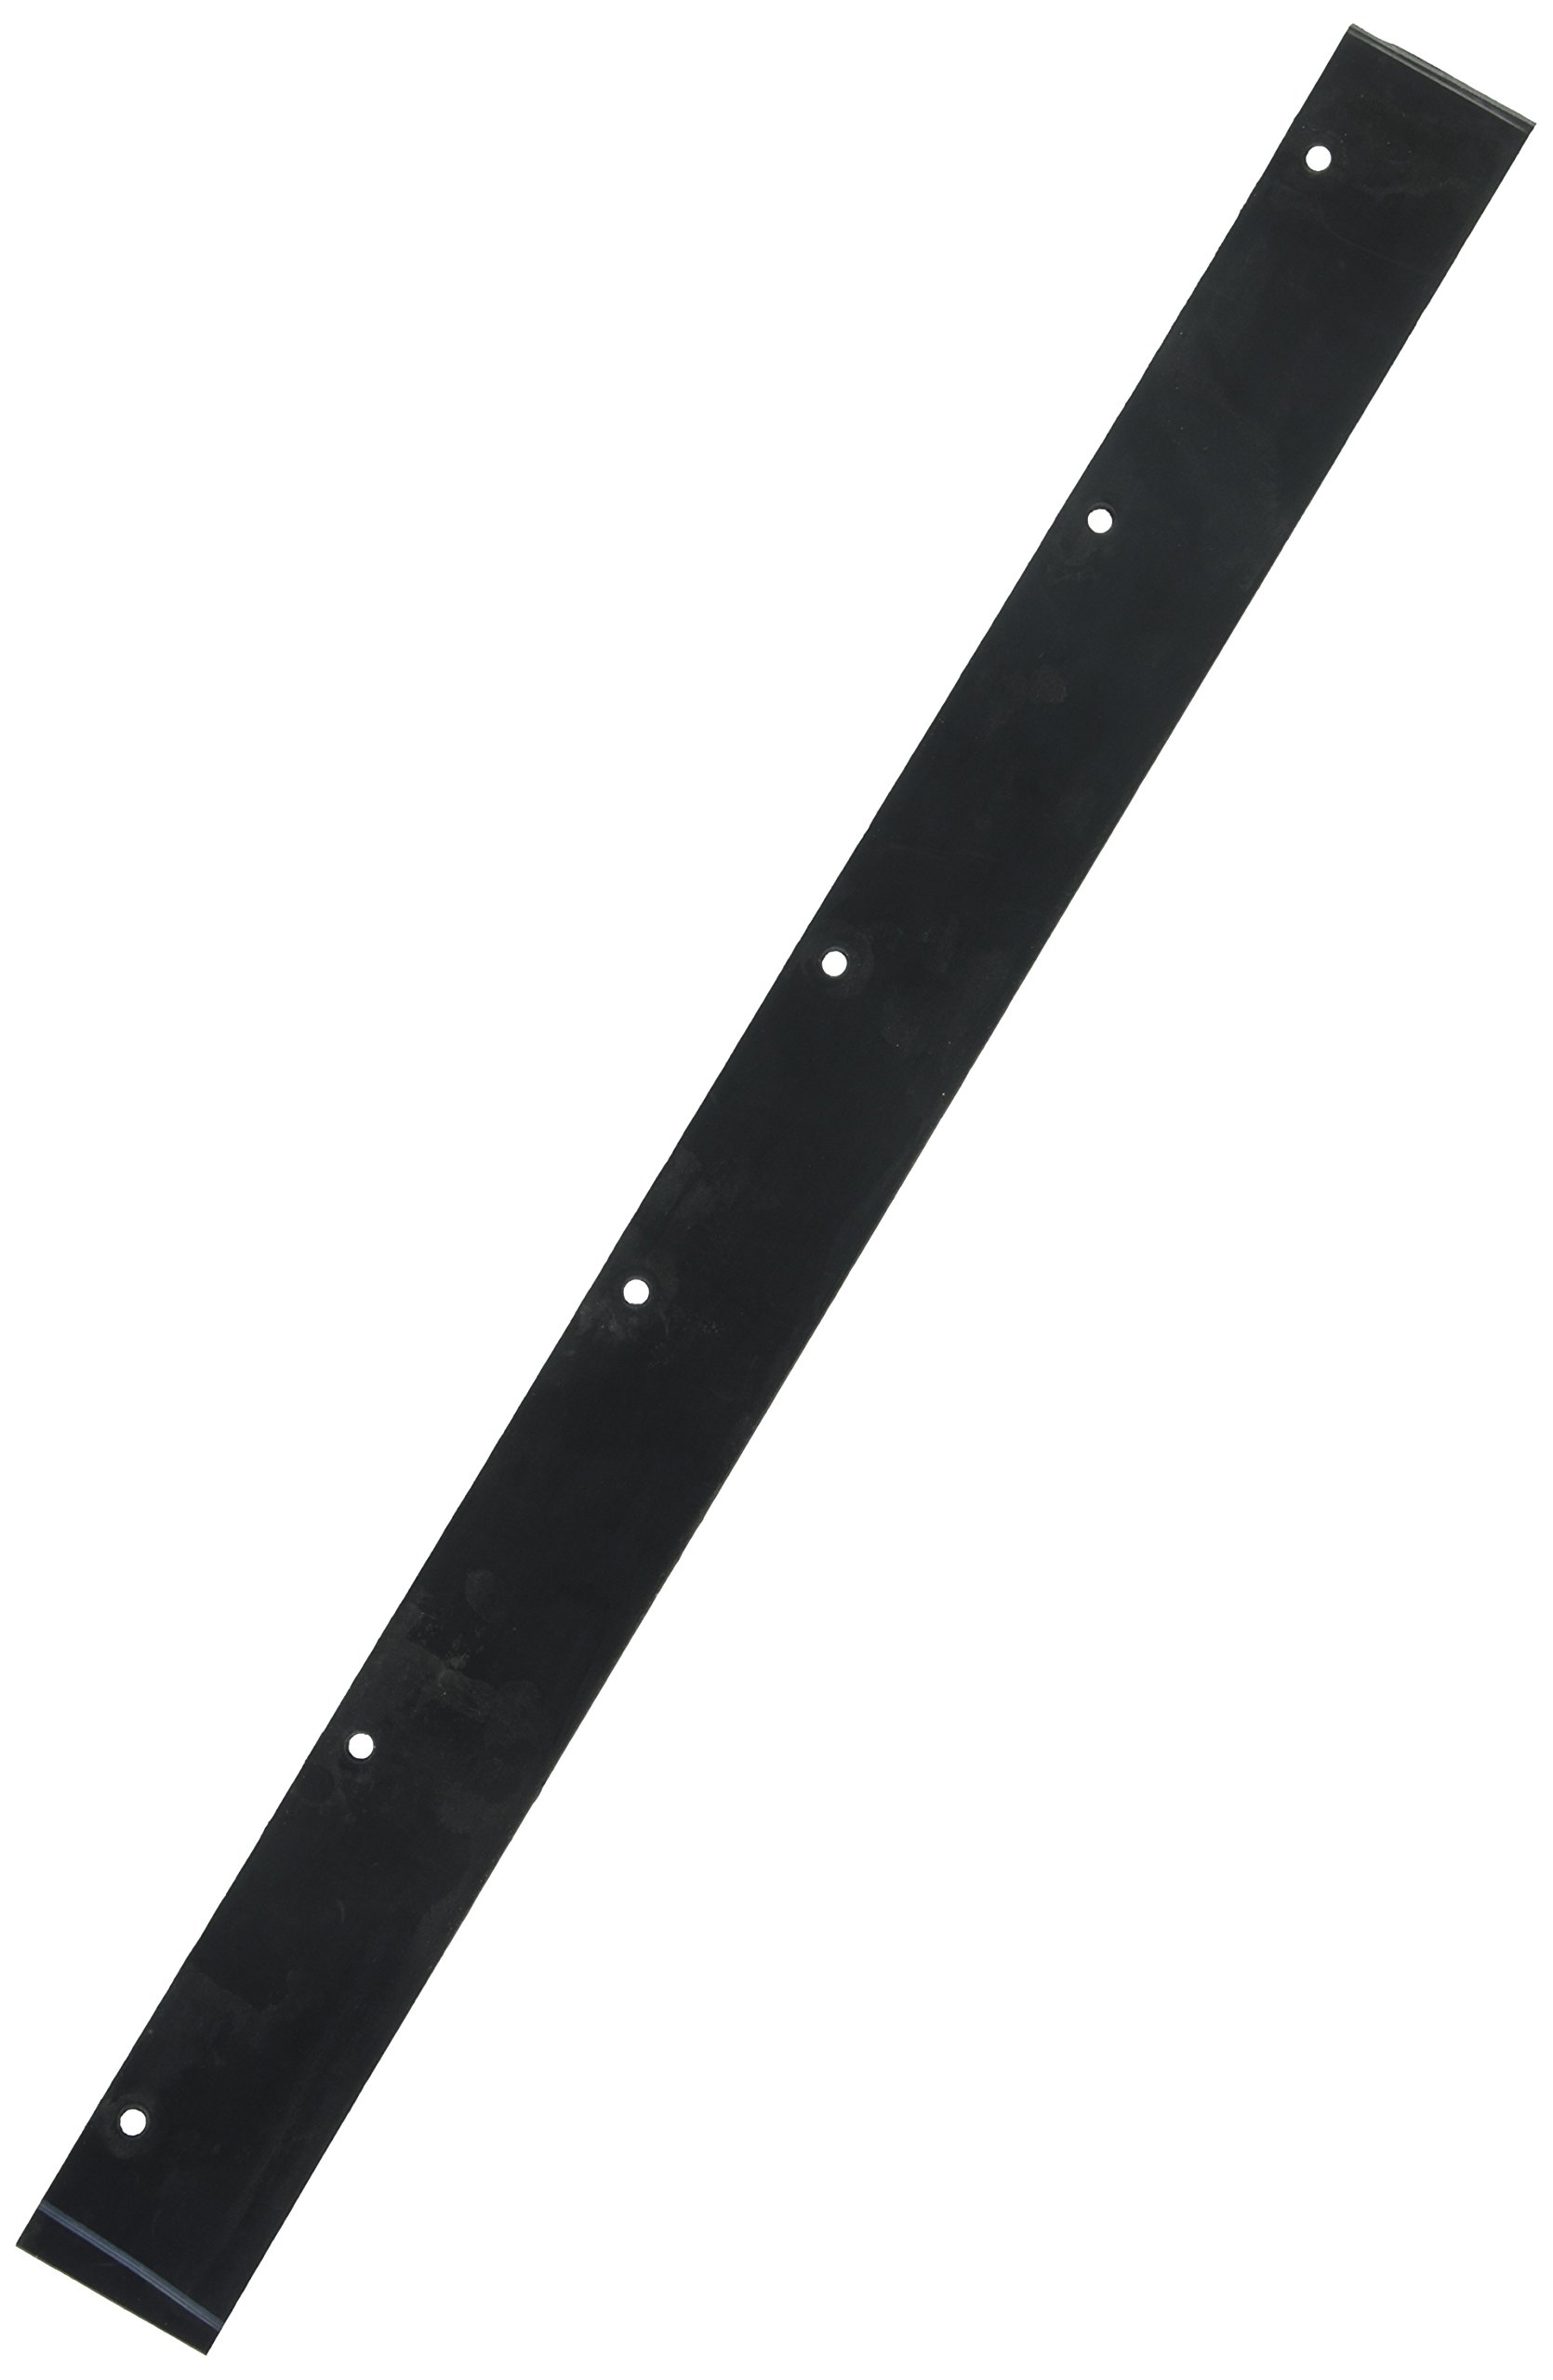 Floor Squeegee Replacement Blade 24'' Made in the USA by Kraft Tool